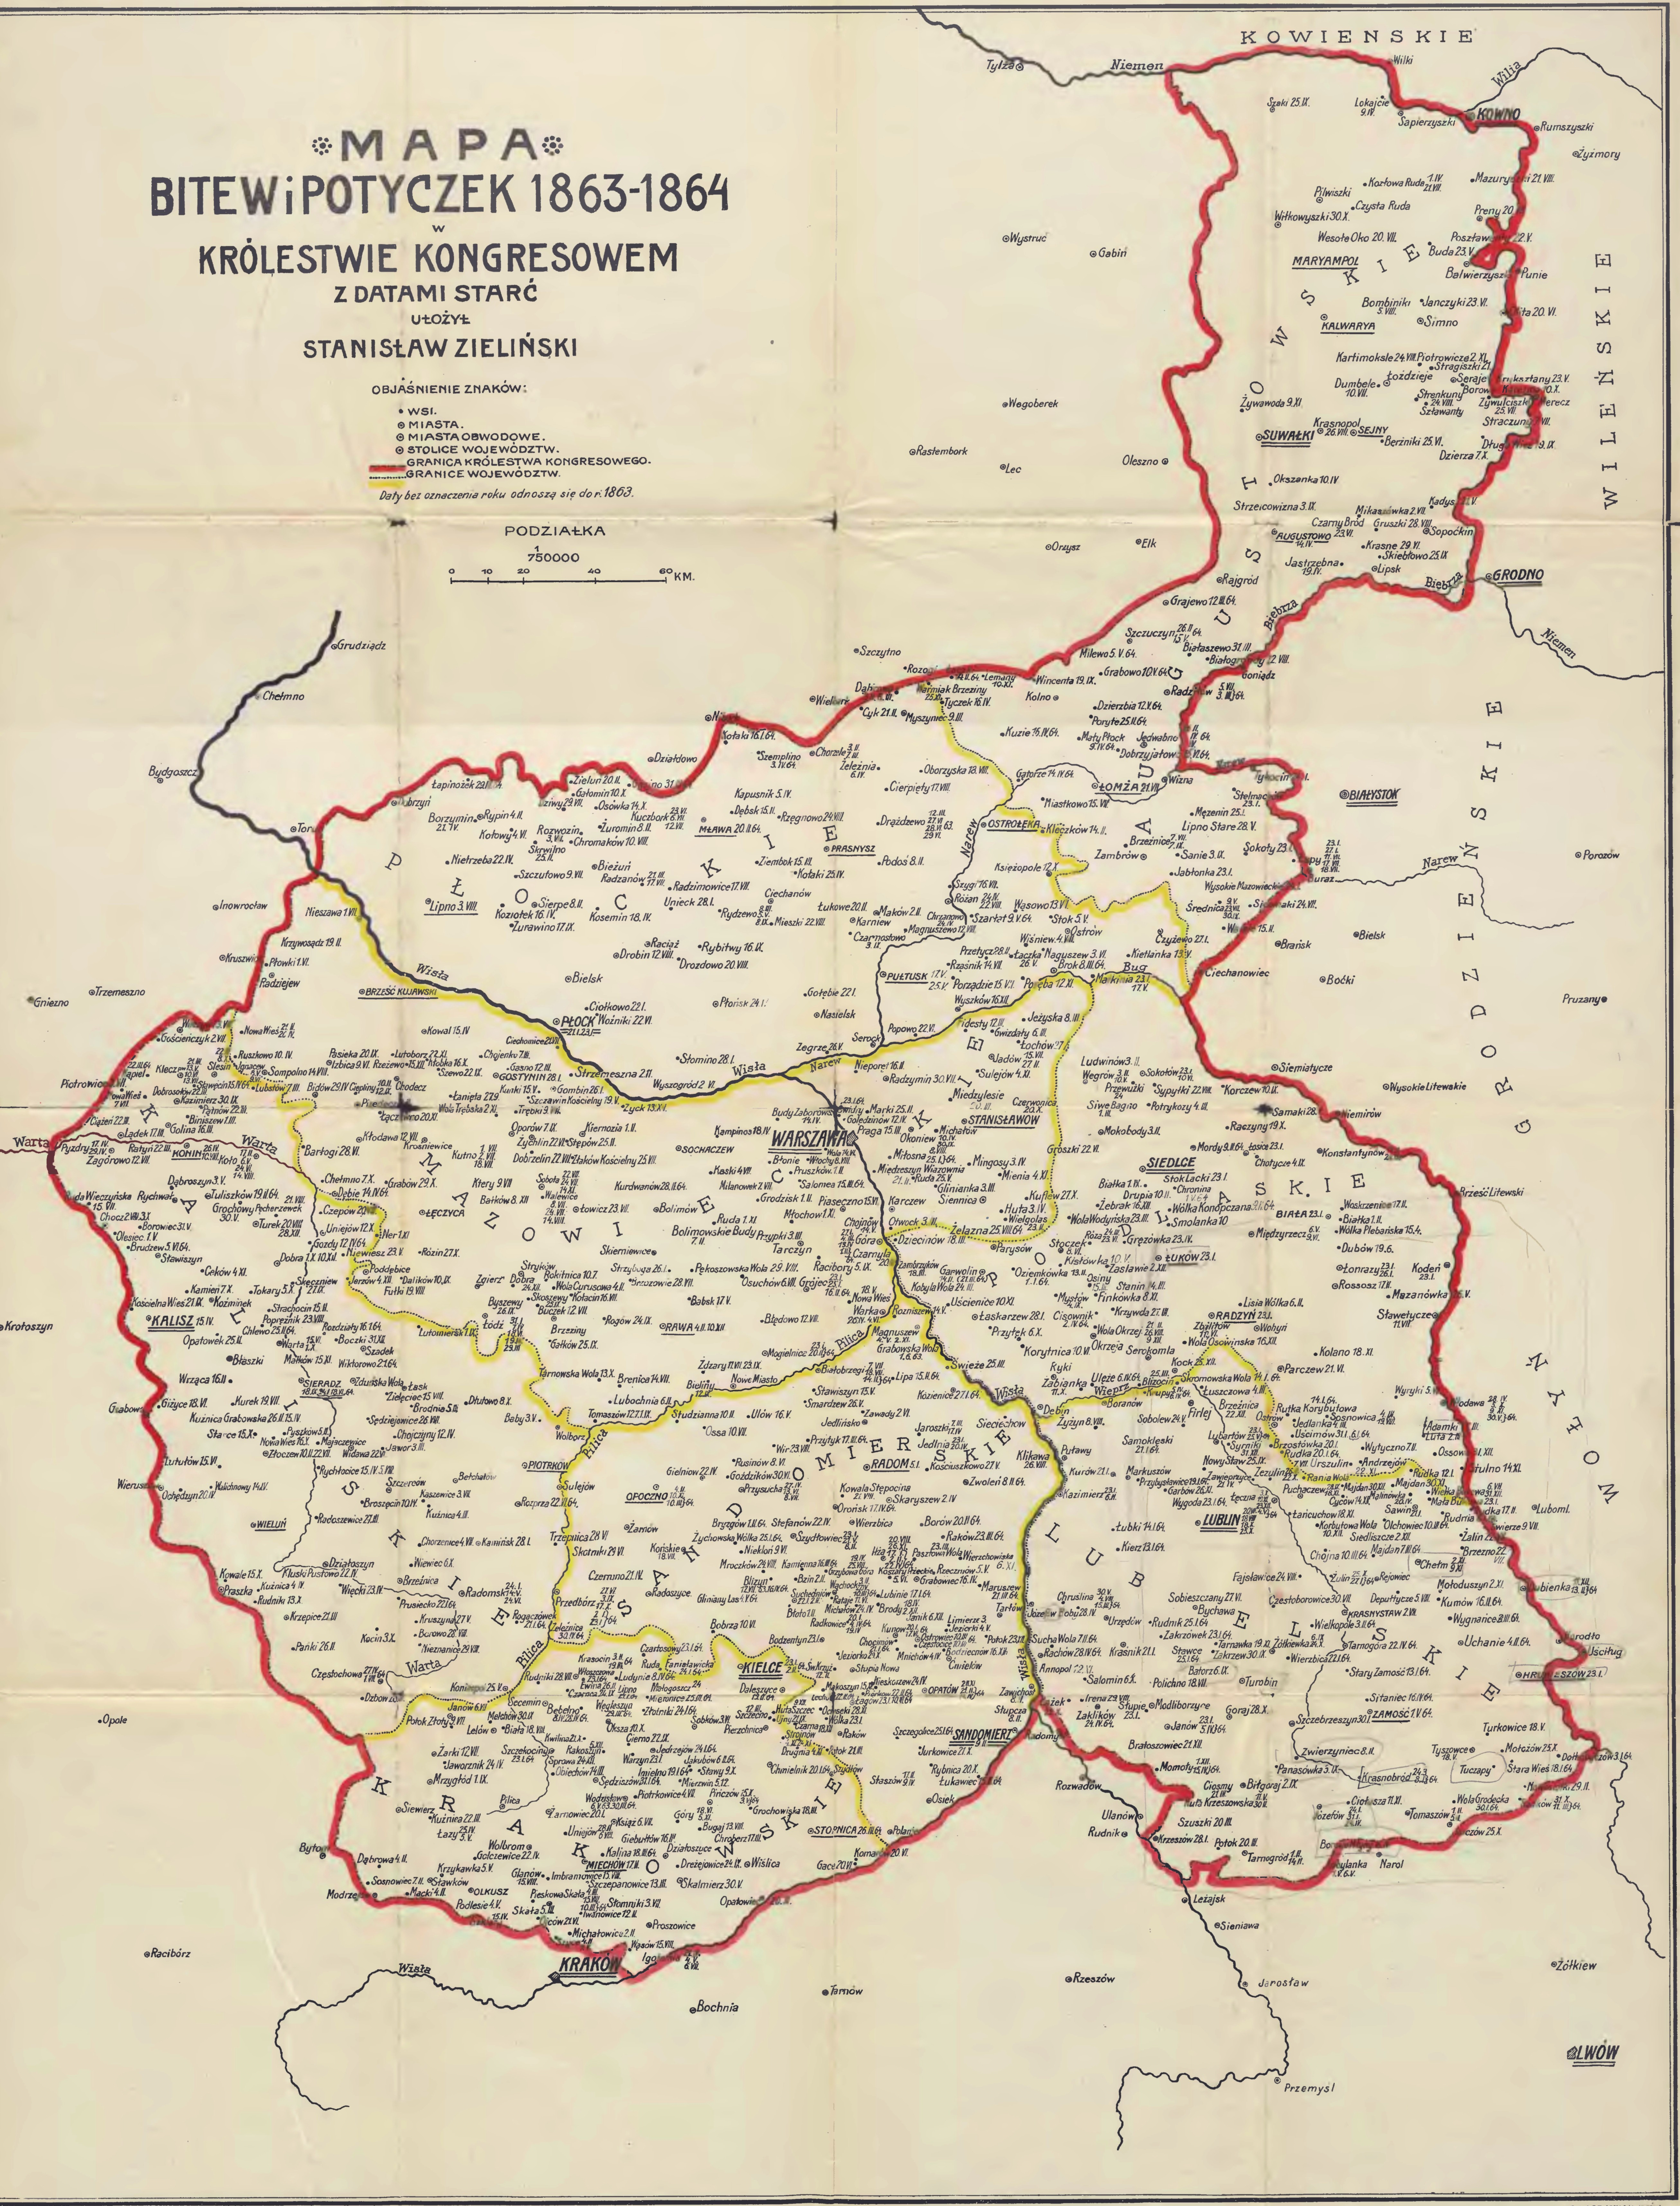 File:Battles of January Uprising in Congress Poland 1863